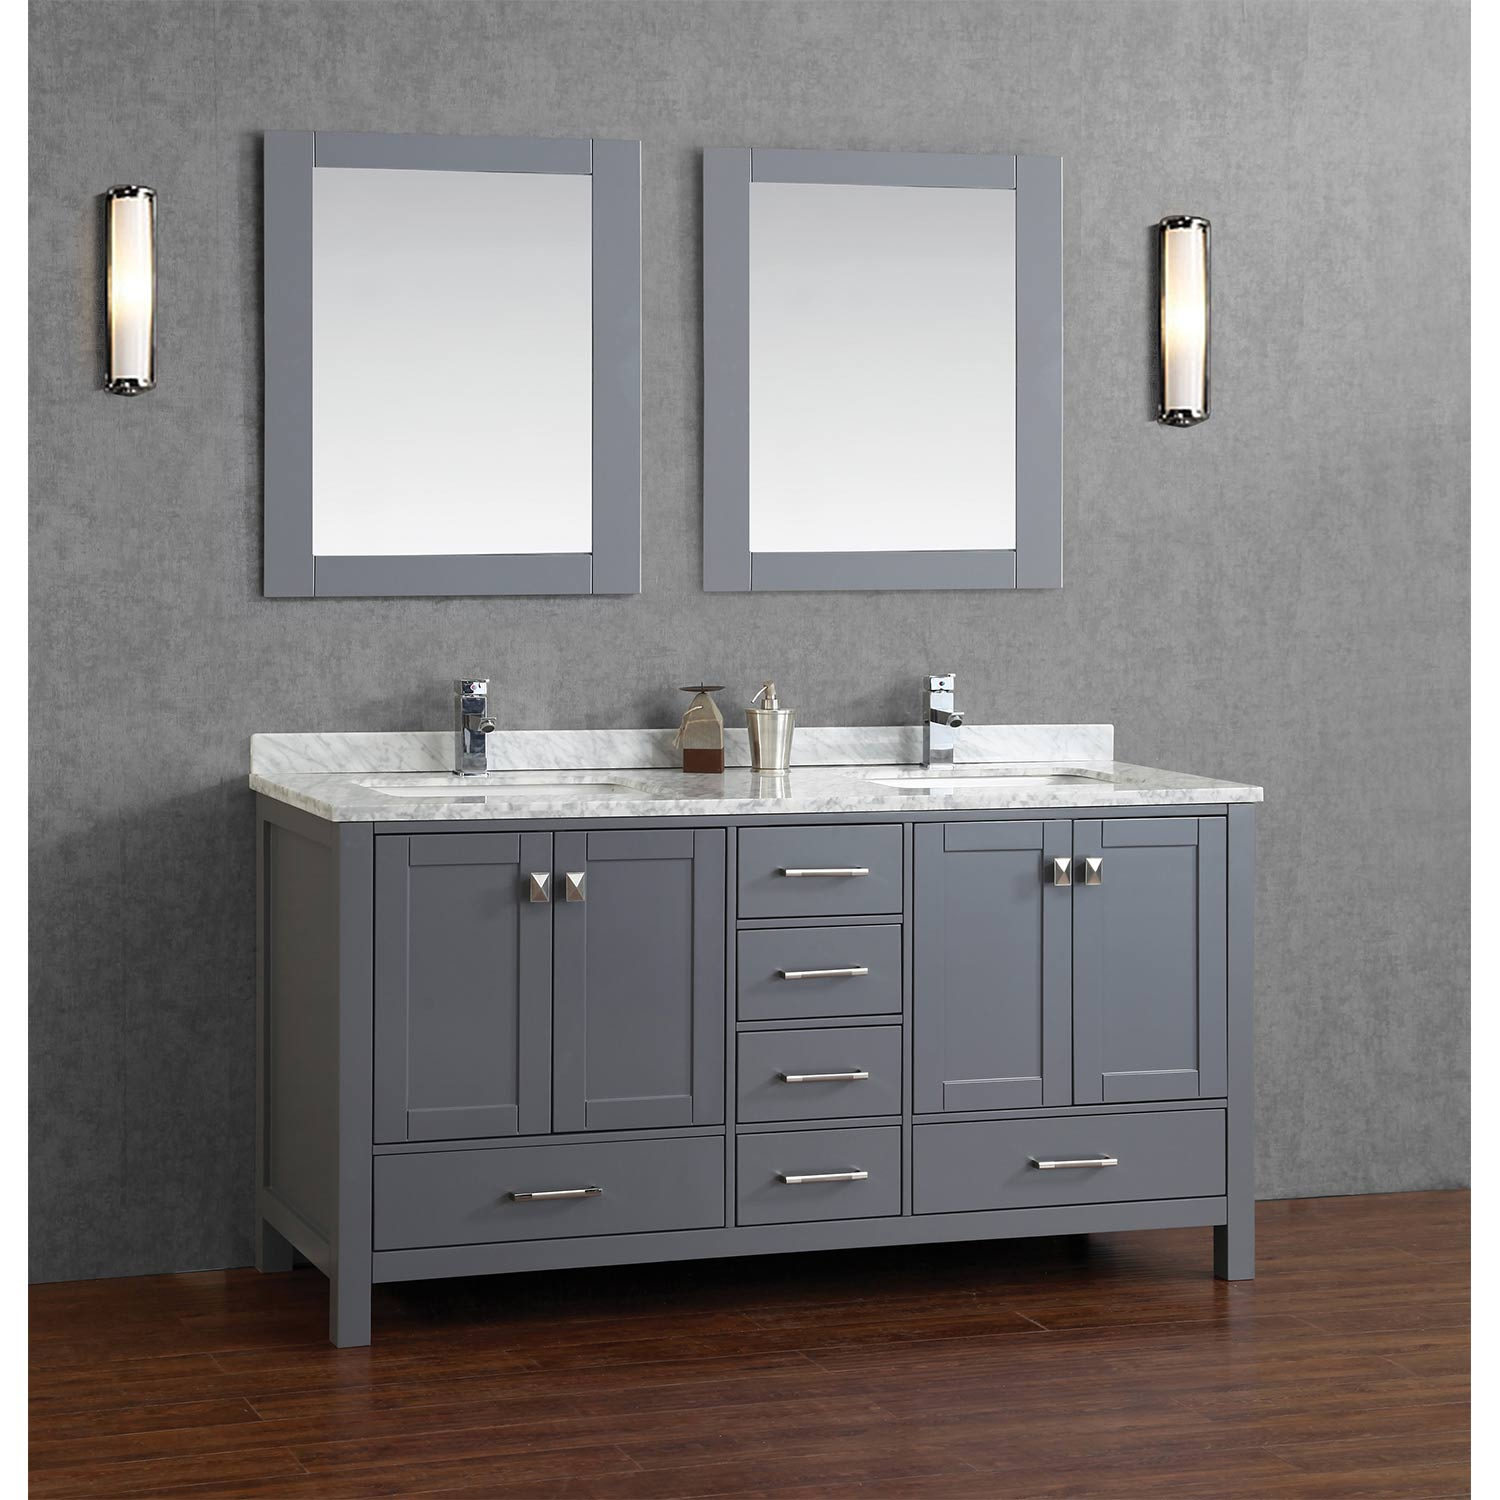 Buy Vincent 72 Inch Solid Wood Double Bathroom Vanity In Charcoal Grey Hm 13001 72 Wmsq Cg Conceptbaths Com